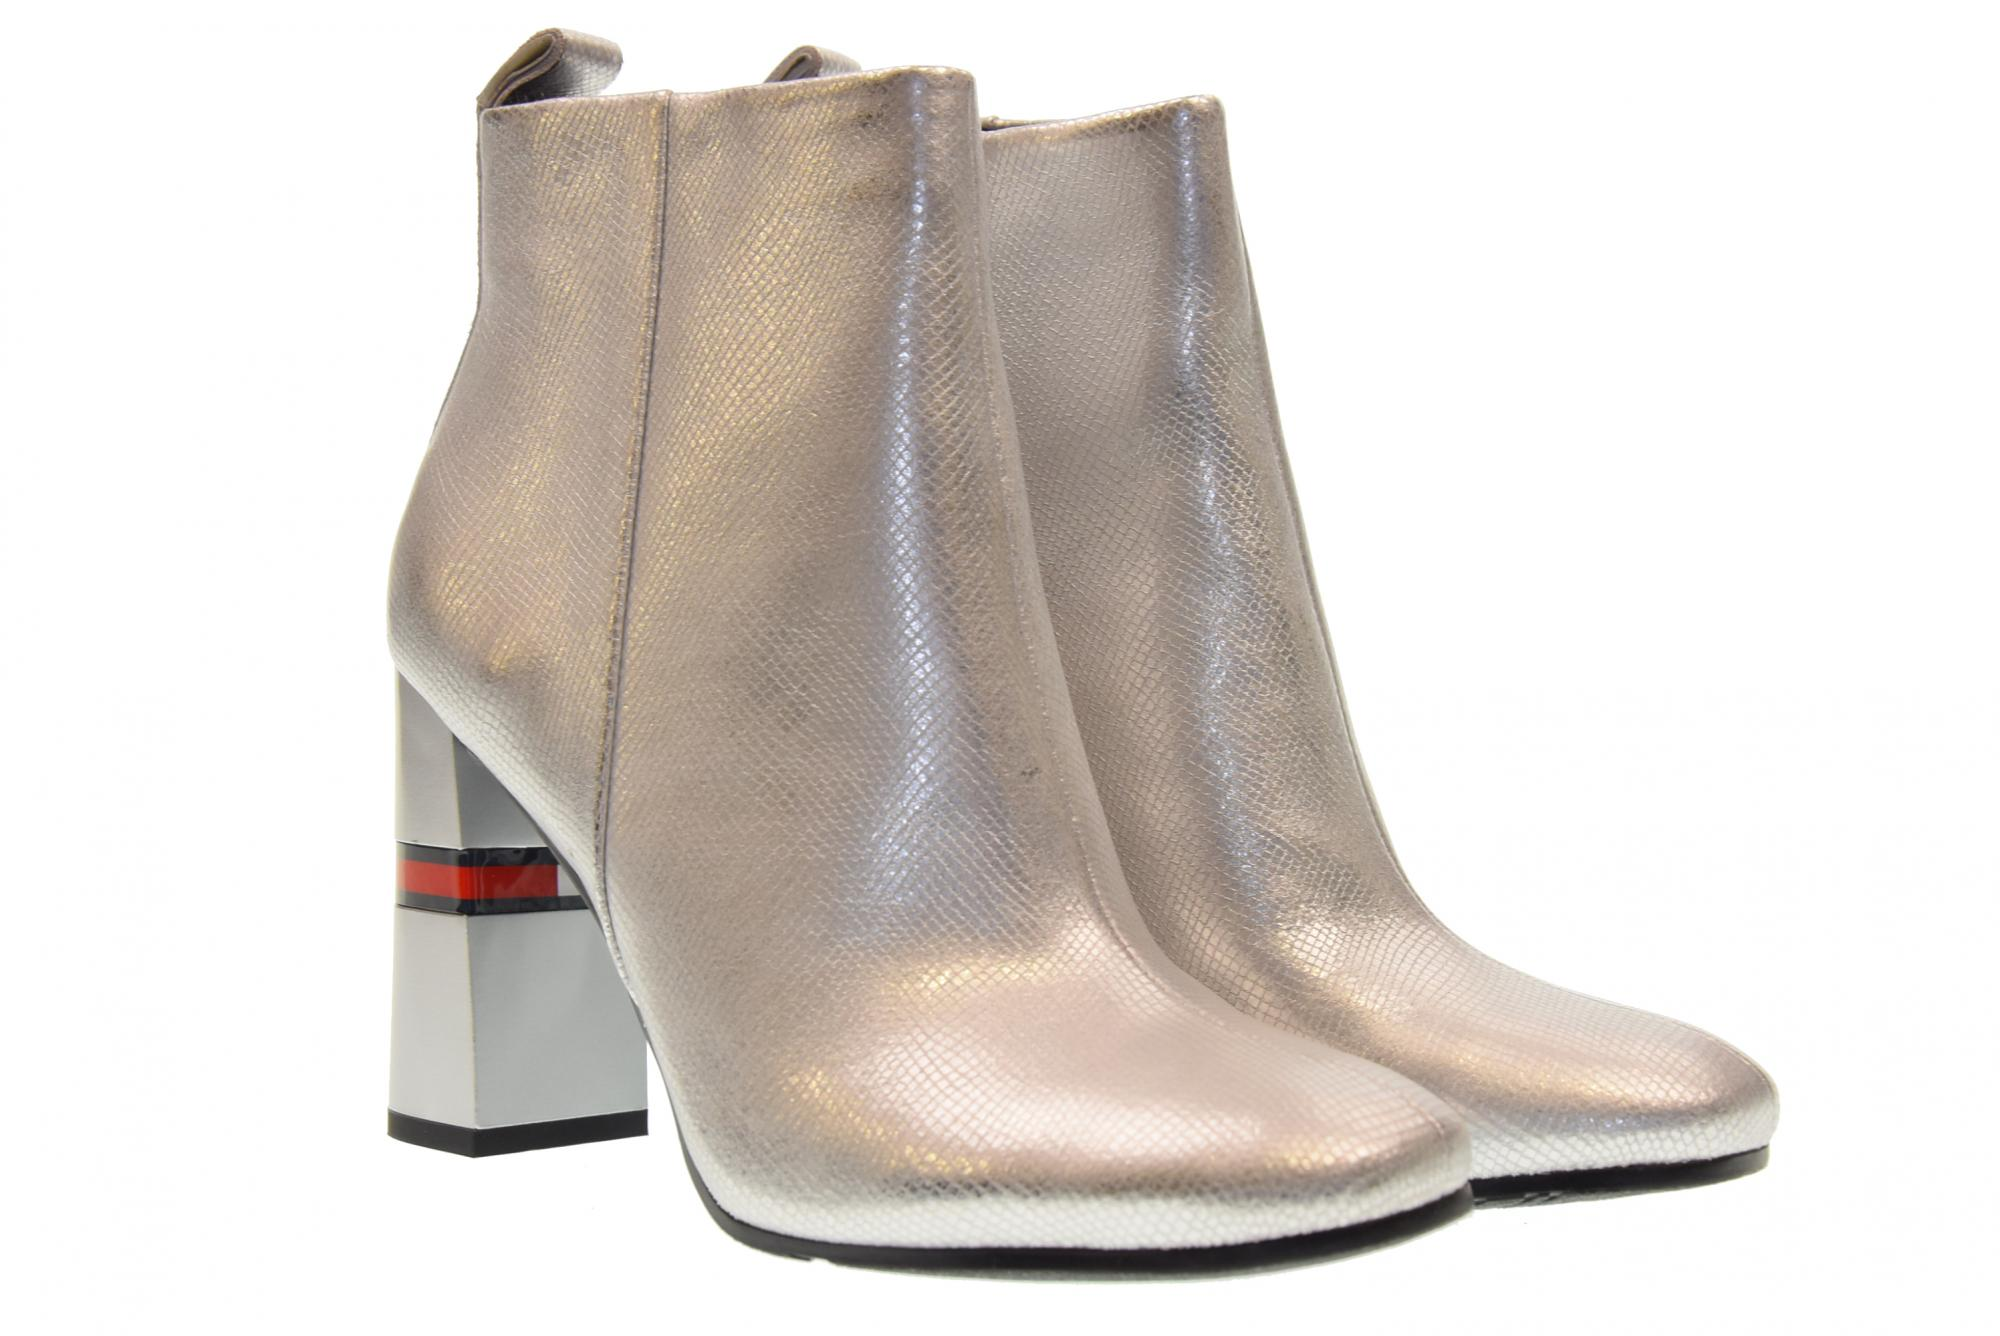 cd9e84cfd3b7 Tommy Hilfiger scarpe donna stivaletti EN0EN00280 000 CRACKLED METALLIC HE  A18